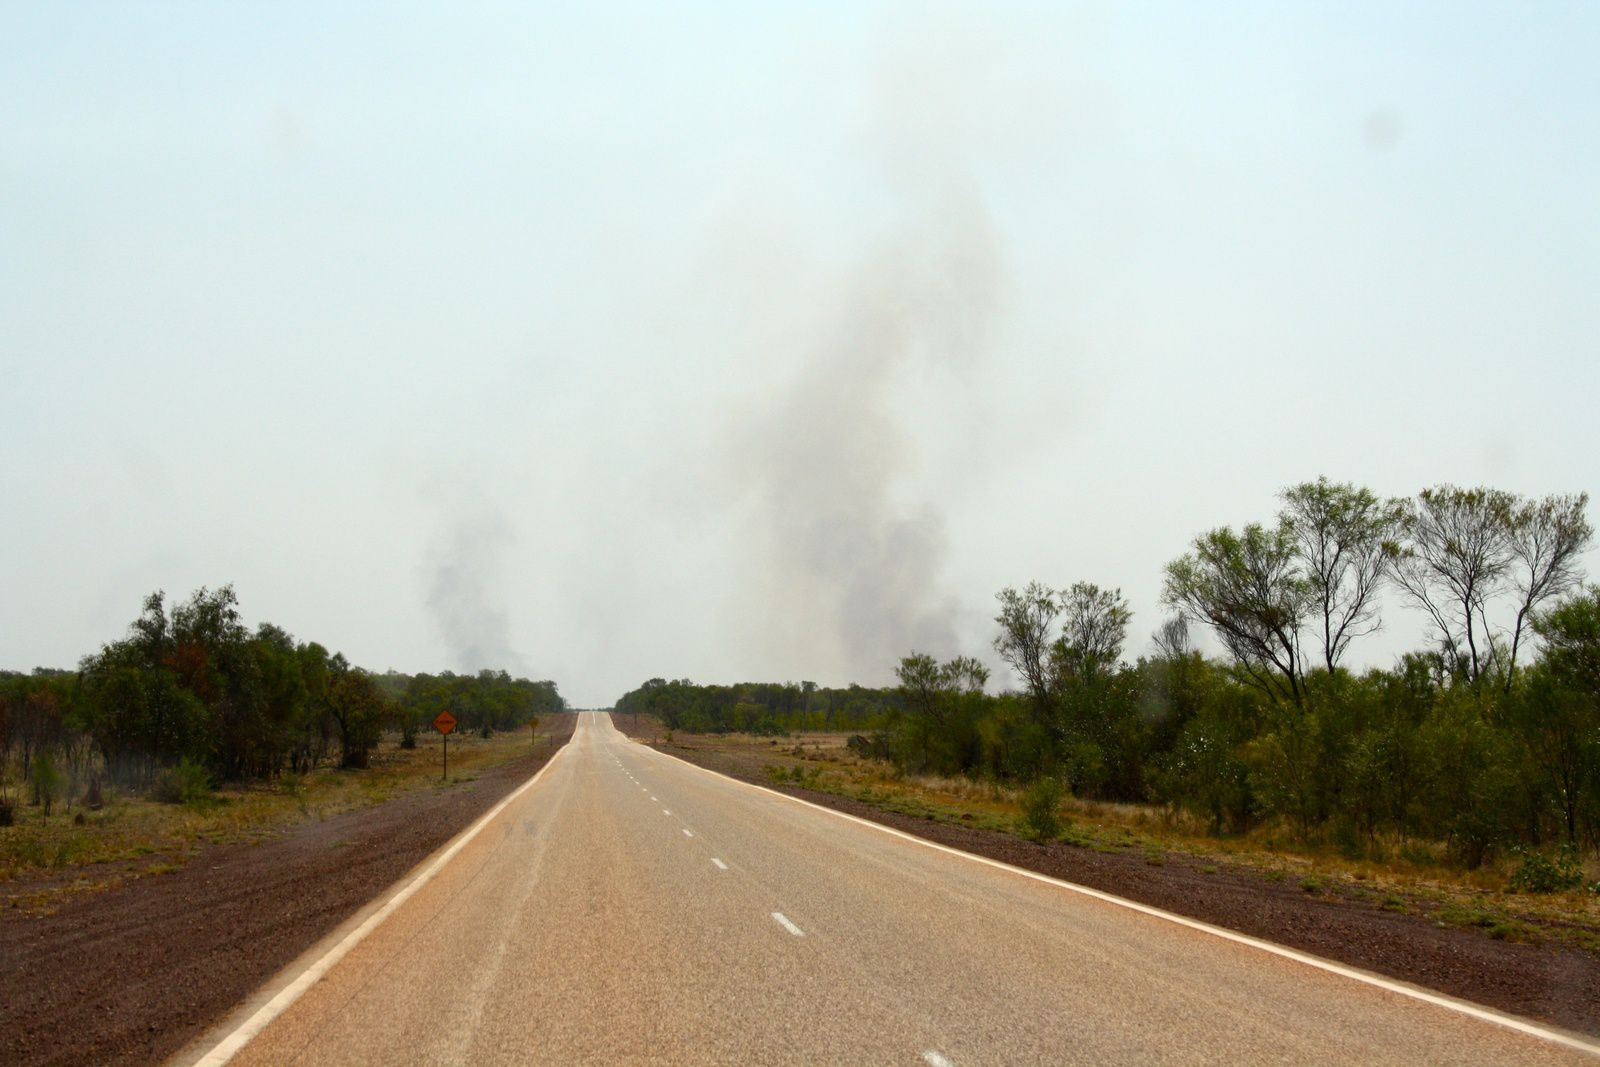 On the way to Broome